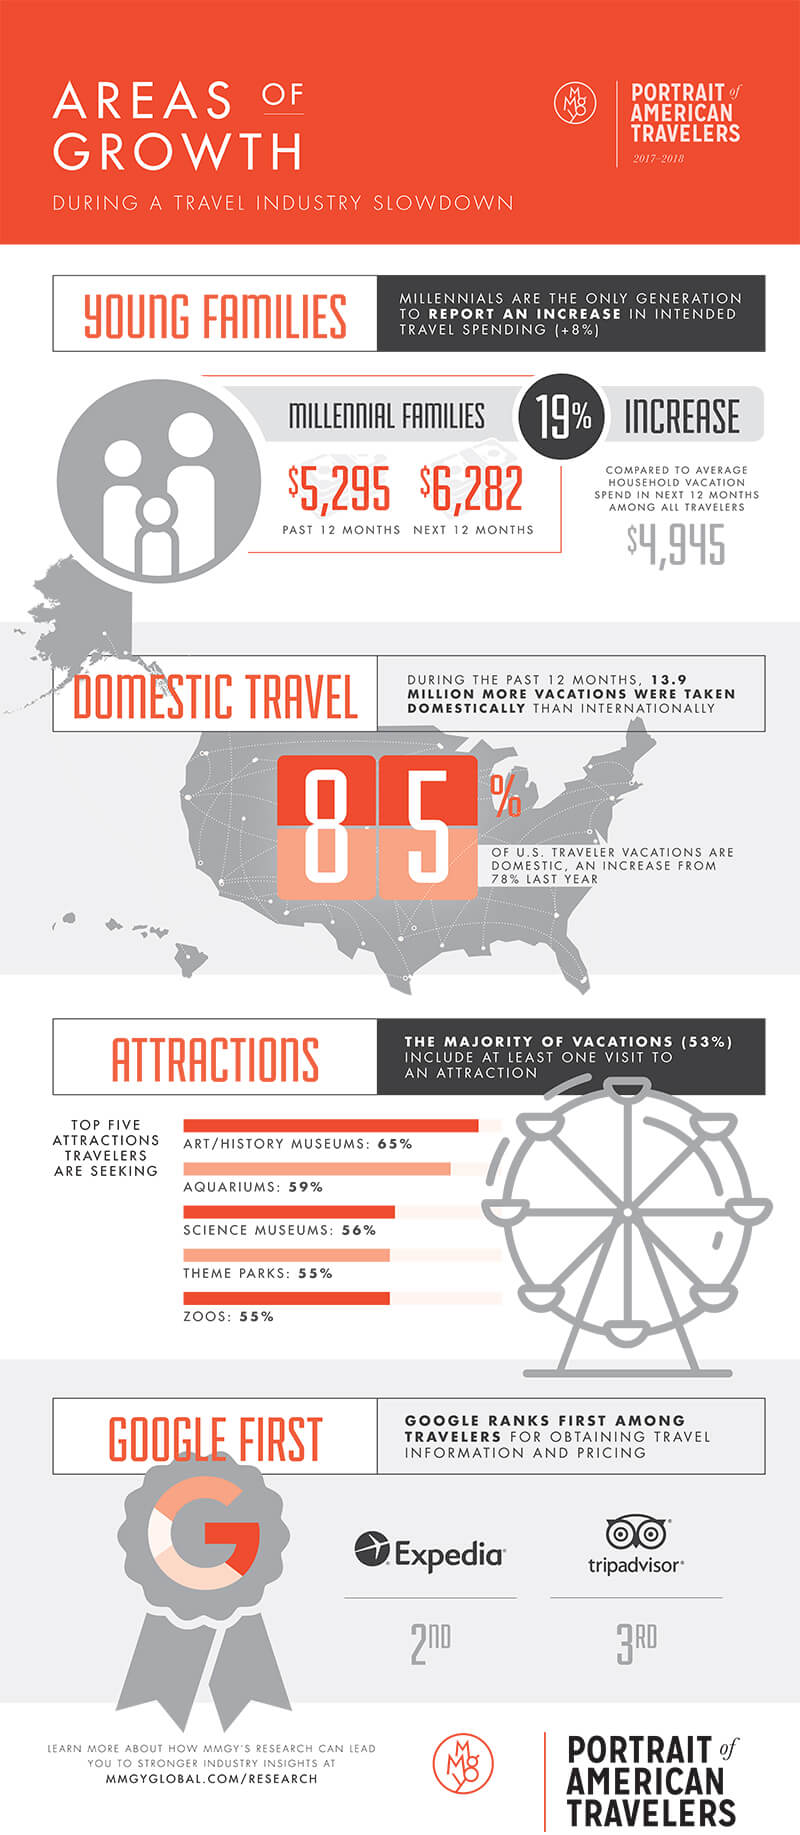 Portrait of Americans Travelers infographic